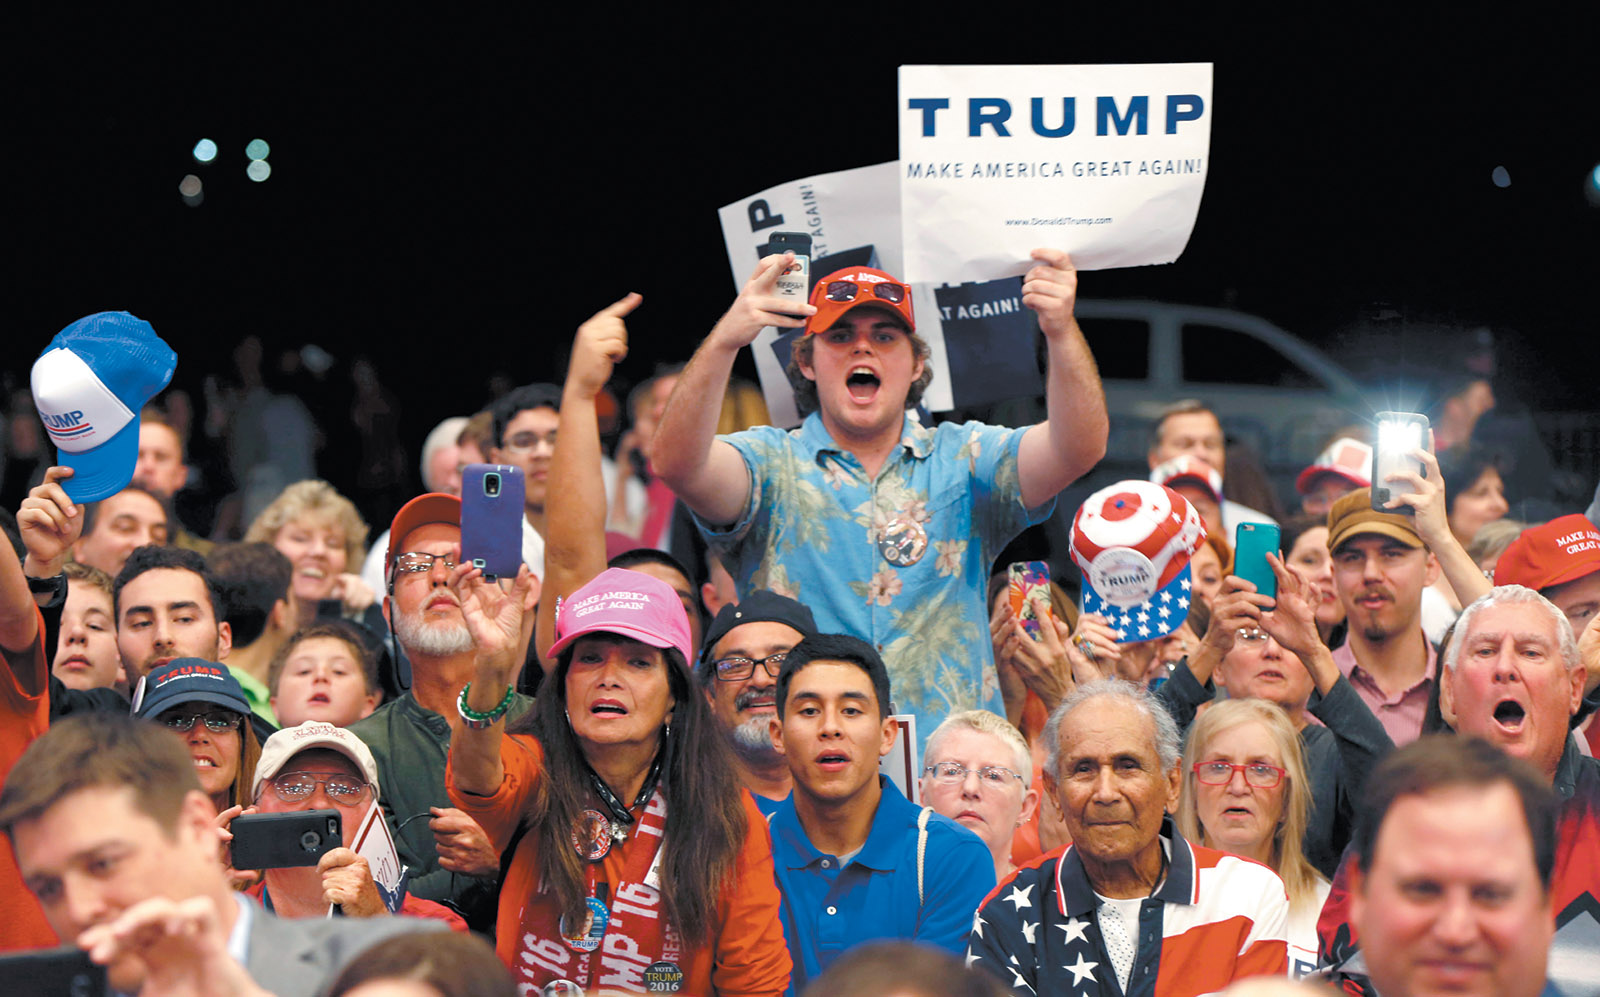 Trump supporters at a campaign rally in New Orleans, March 2016